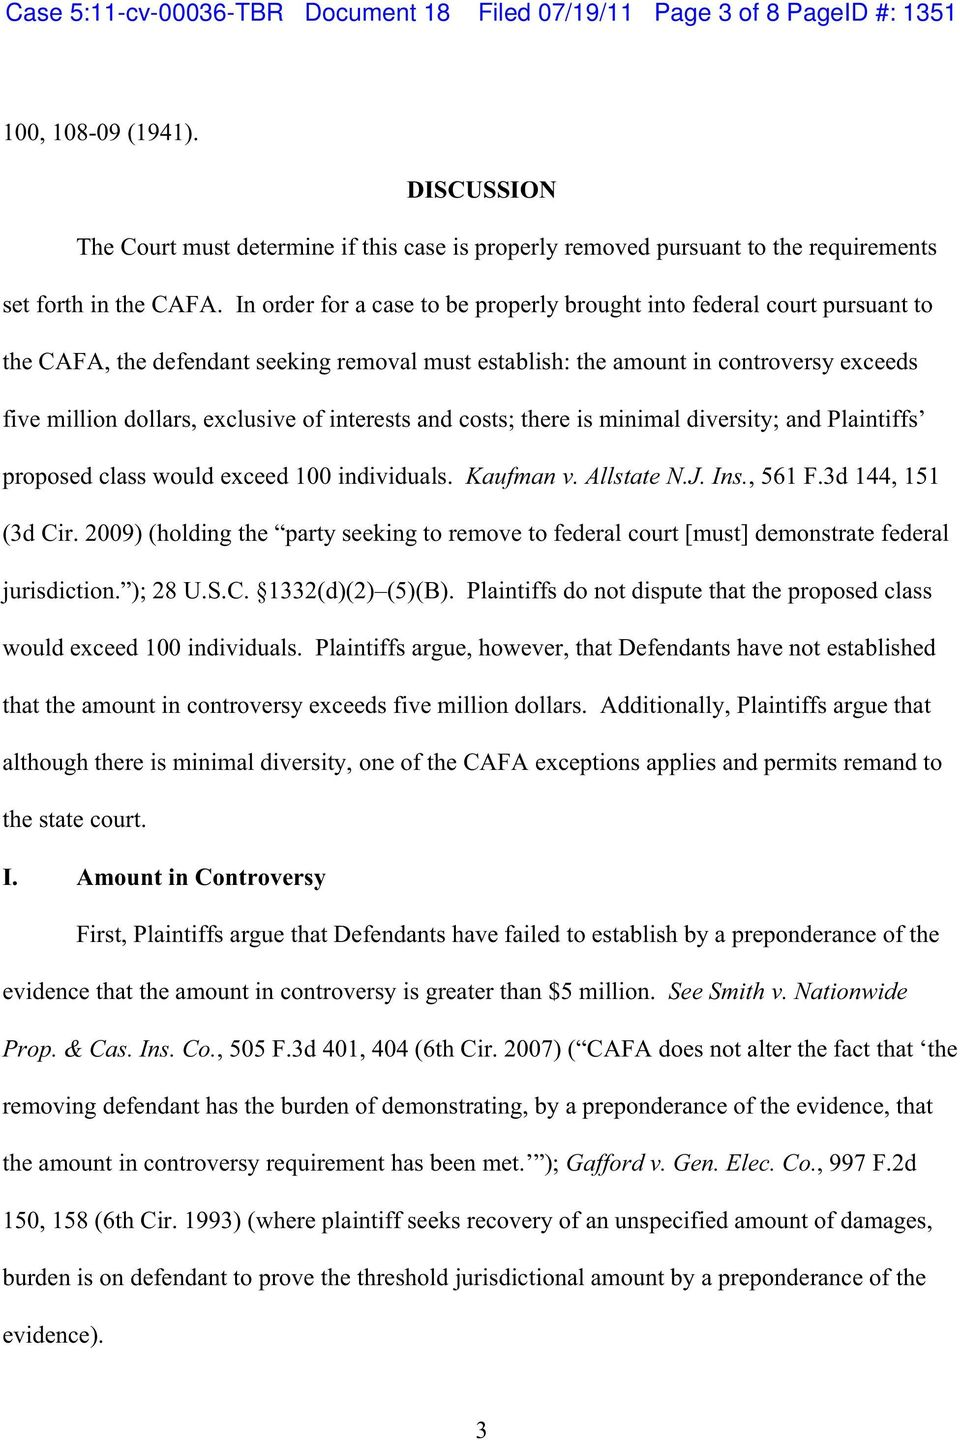 In order for a case to be properly brought into federal court pursuant to the CAFA, the defendant seeking removal must establish: the amount in controversy exceeds five million dollars, exclusive of